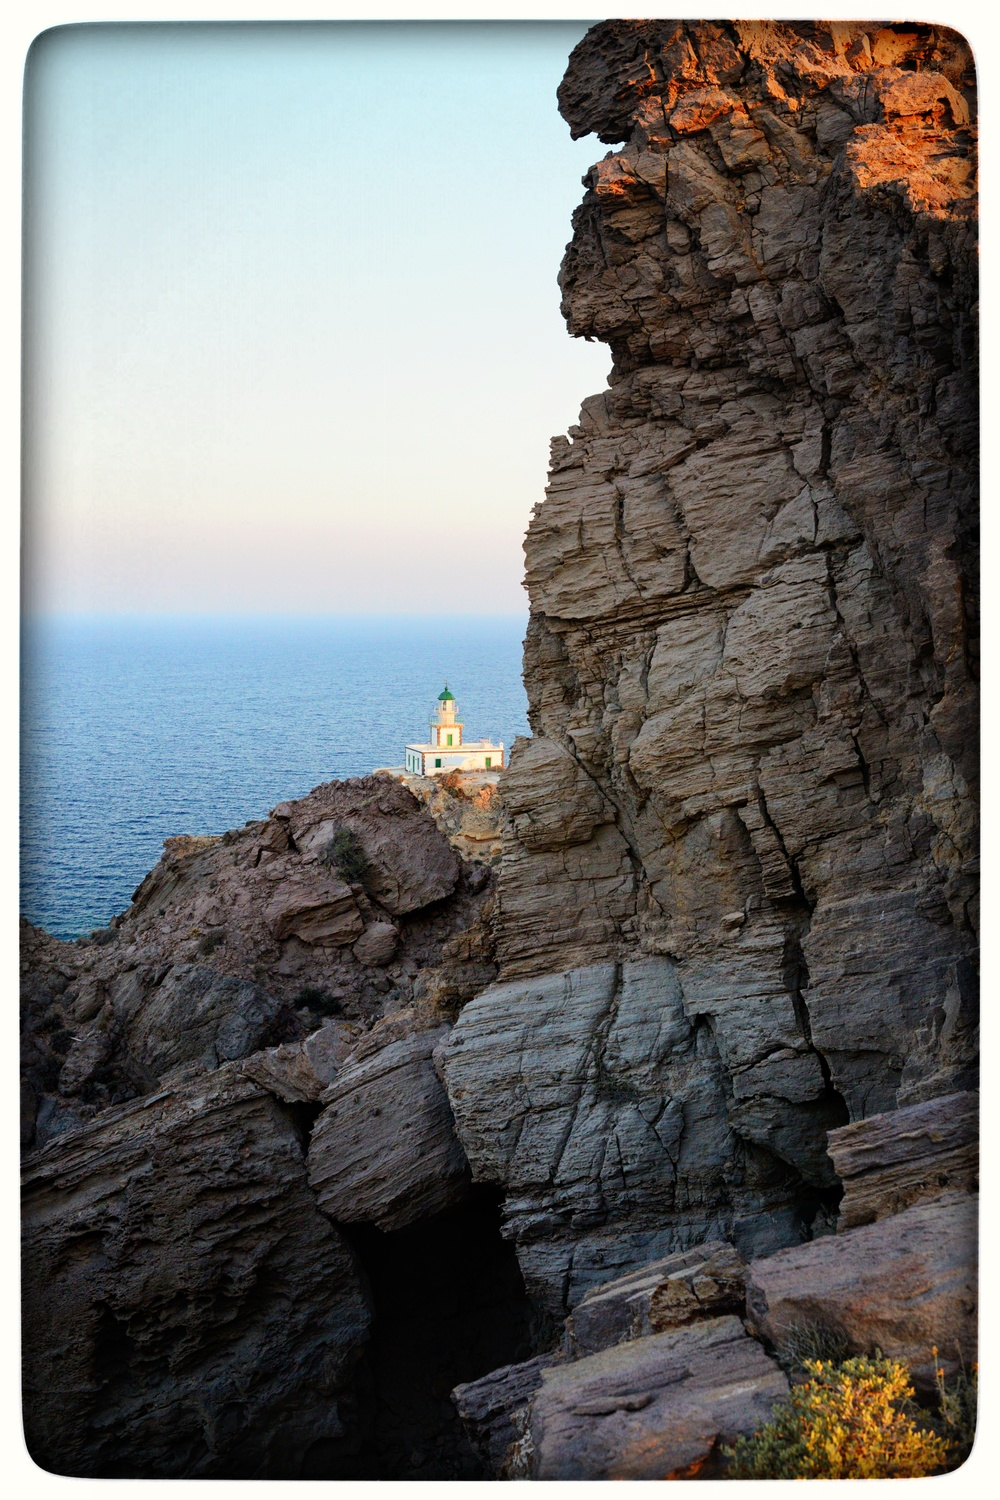 The Faros lighthouse.